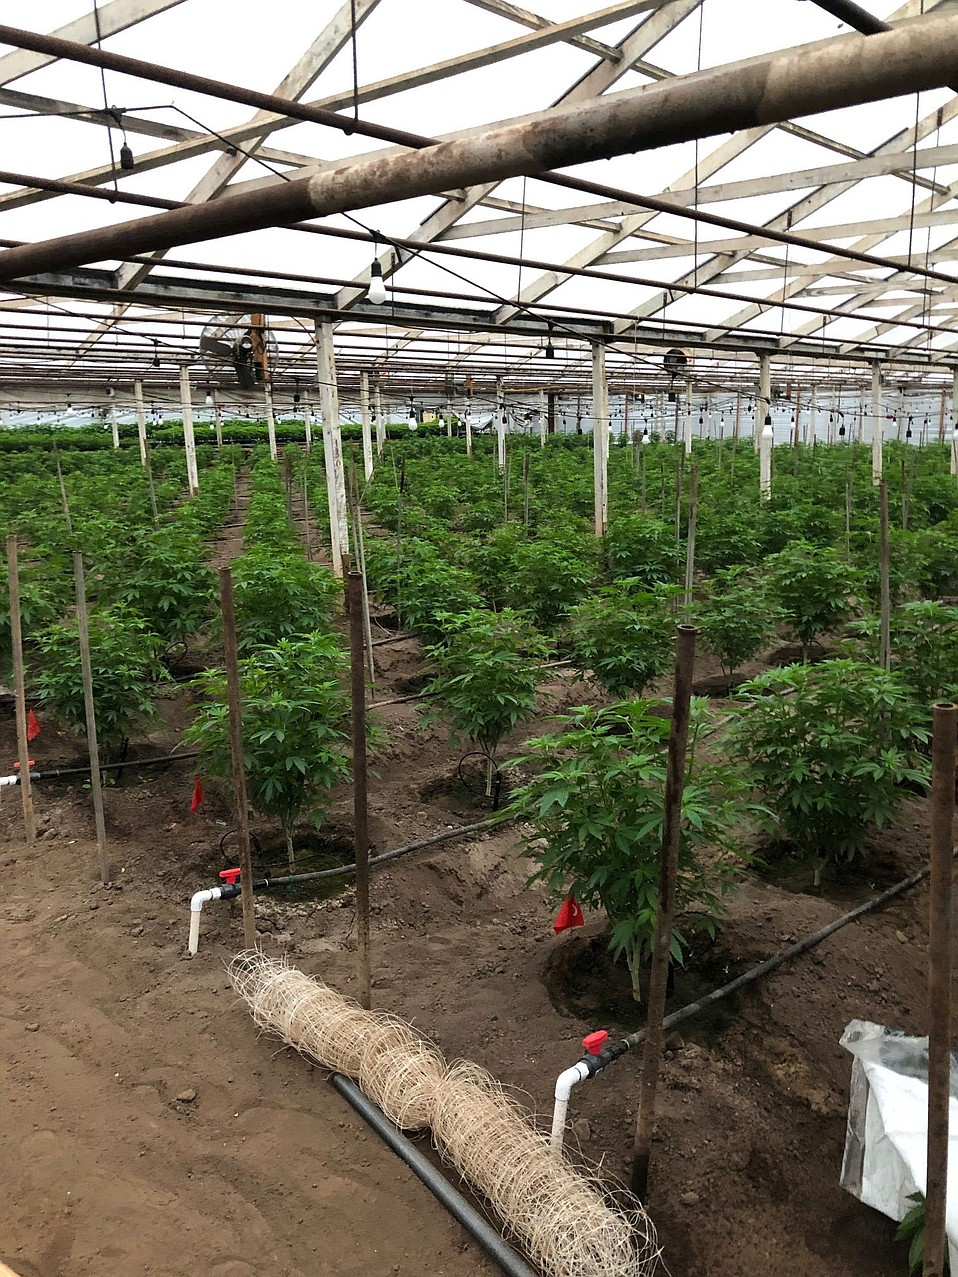 Approximately 22,420 cannabis plants were seized and destroyed